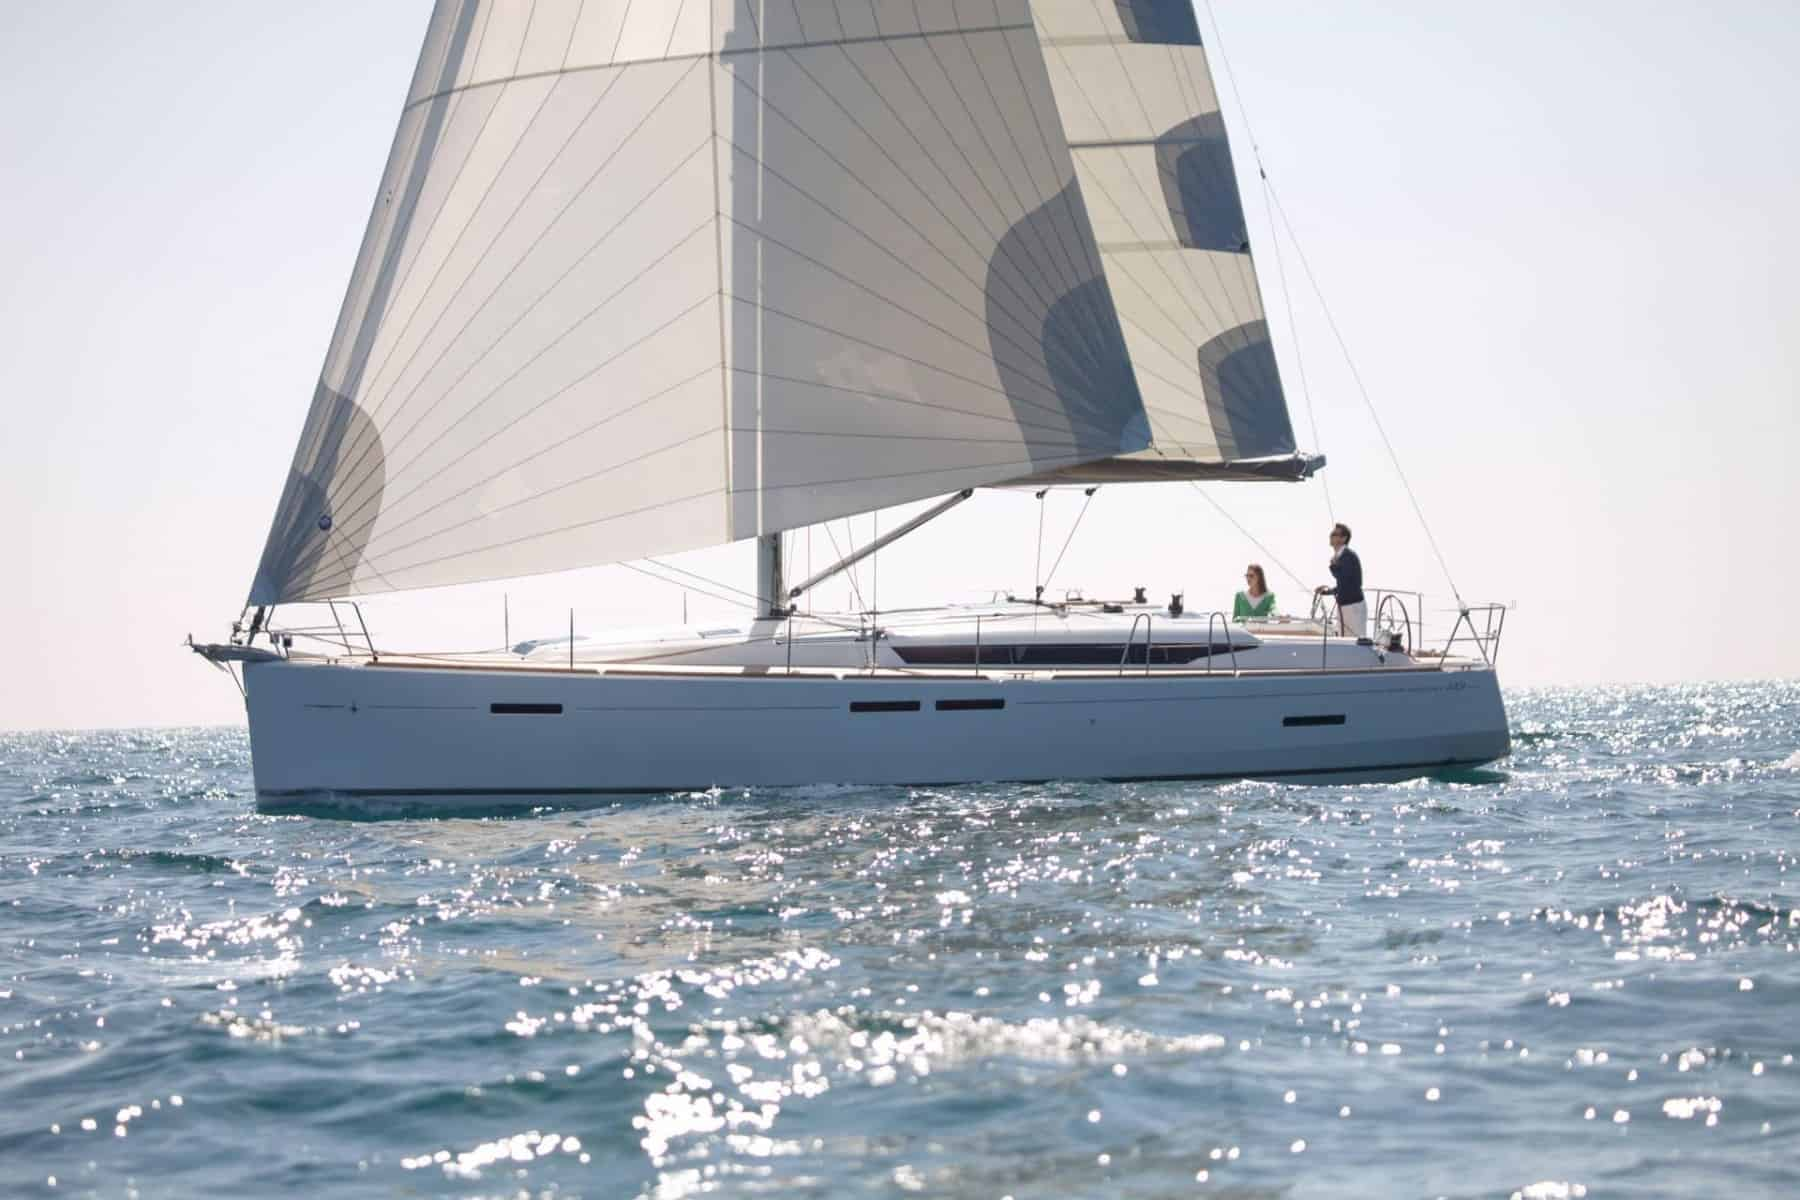 Jeanneau Sun Odyssey 449 in profile sailing with wind in its sail